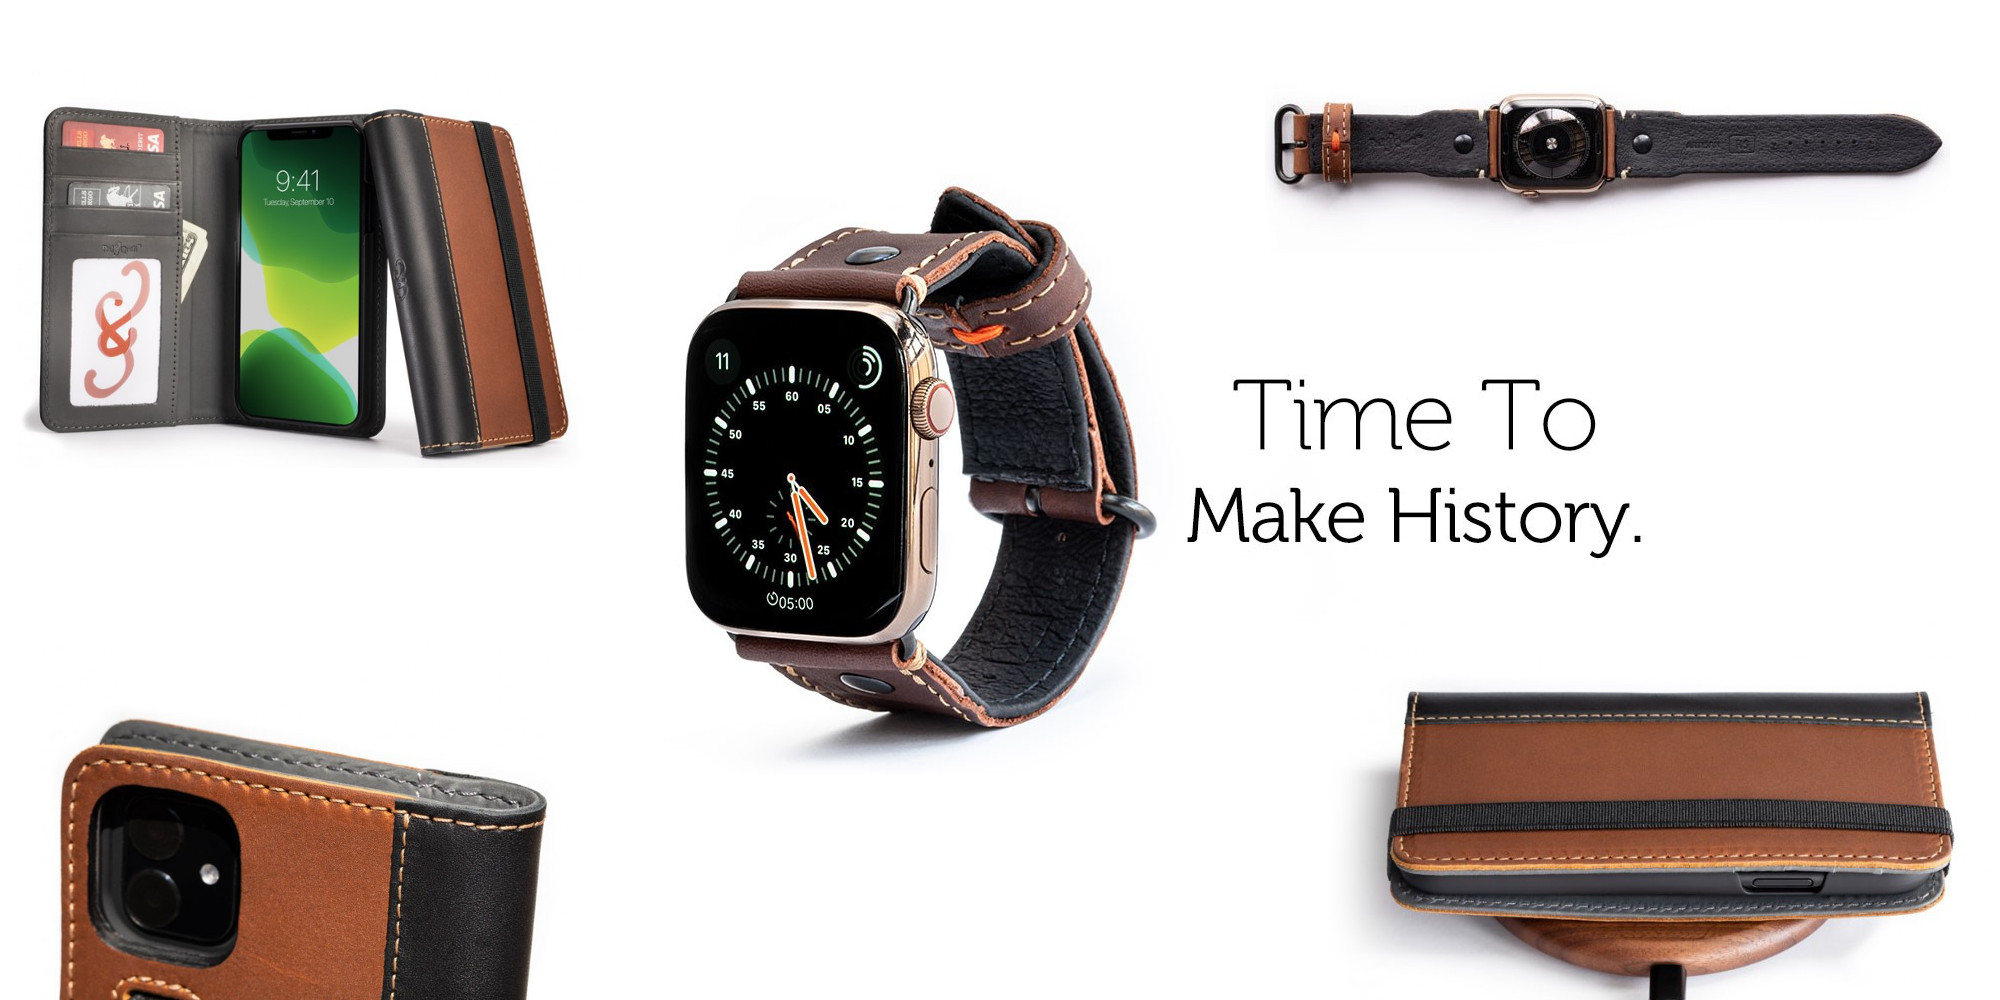 Pad & Quill's new Watch bands, iPhone cases, and iPad covers are 30% off today